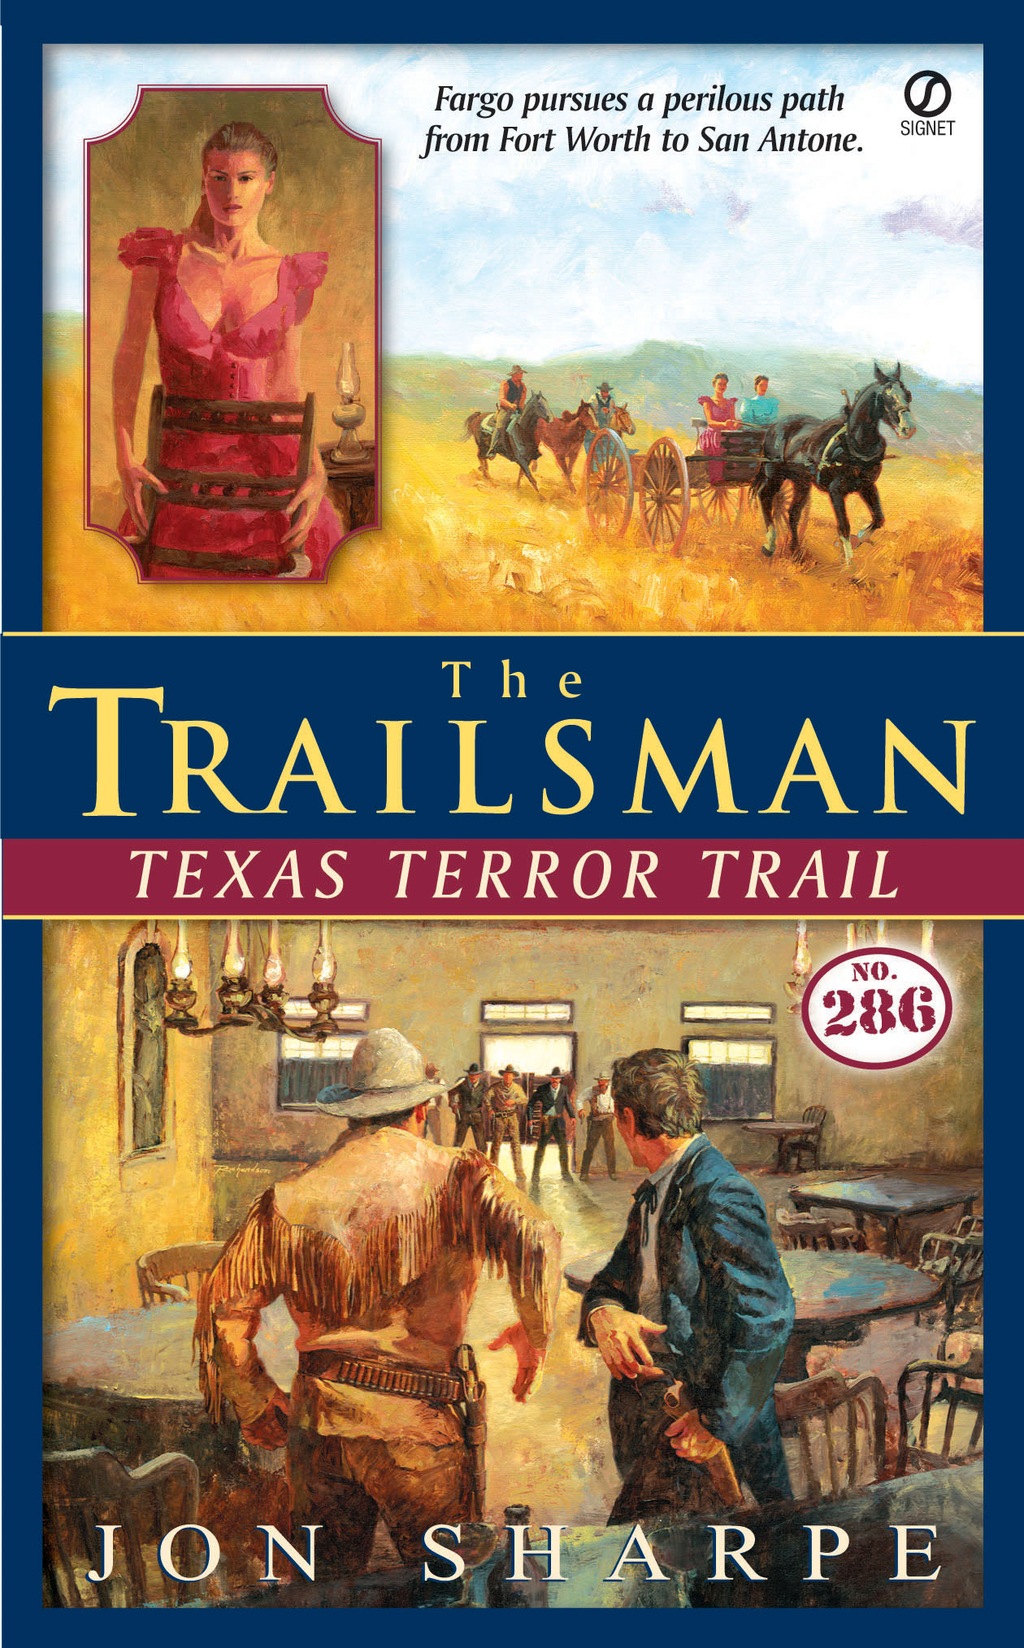 The Trailsman #286 By: Jon Sharpe